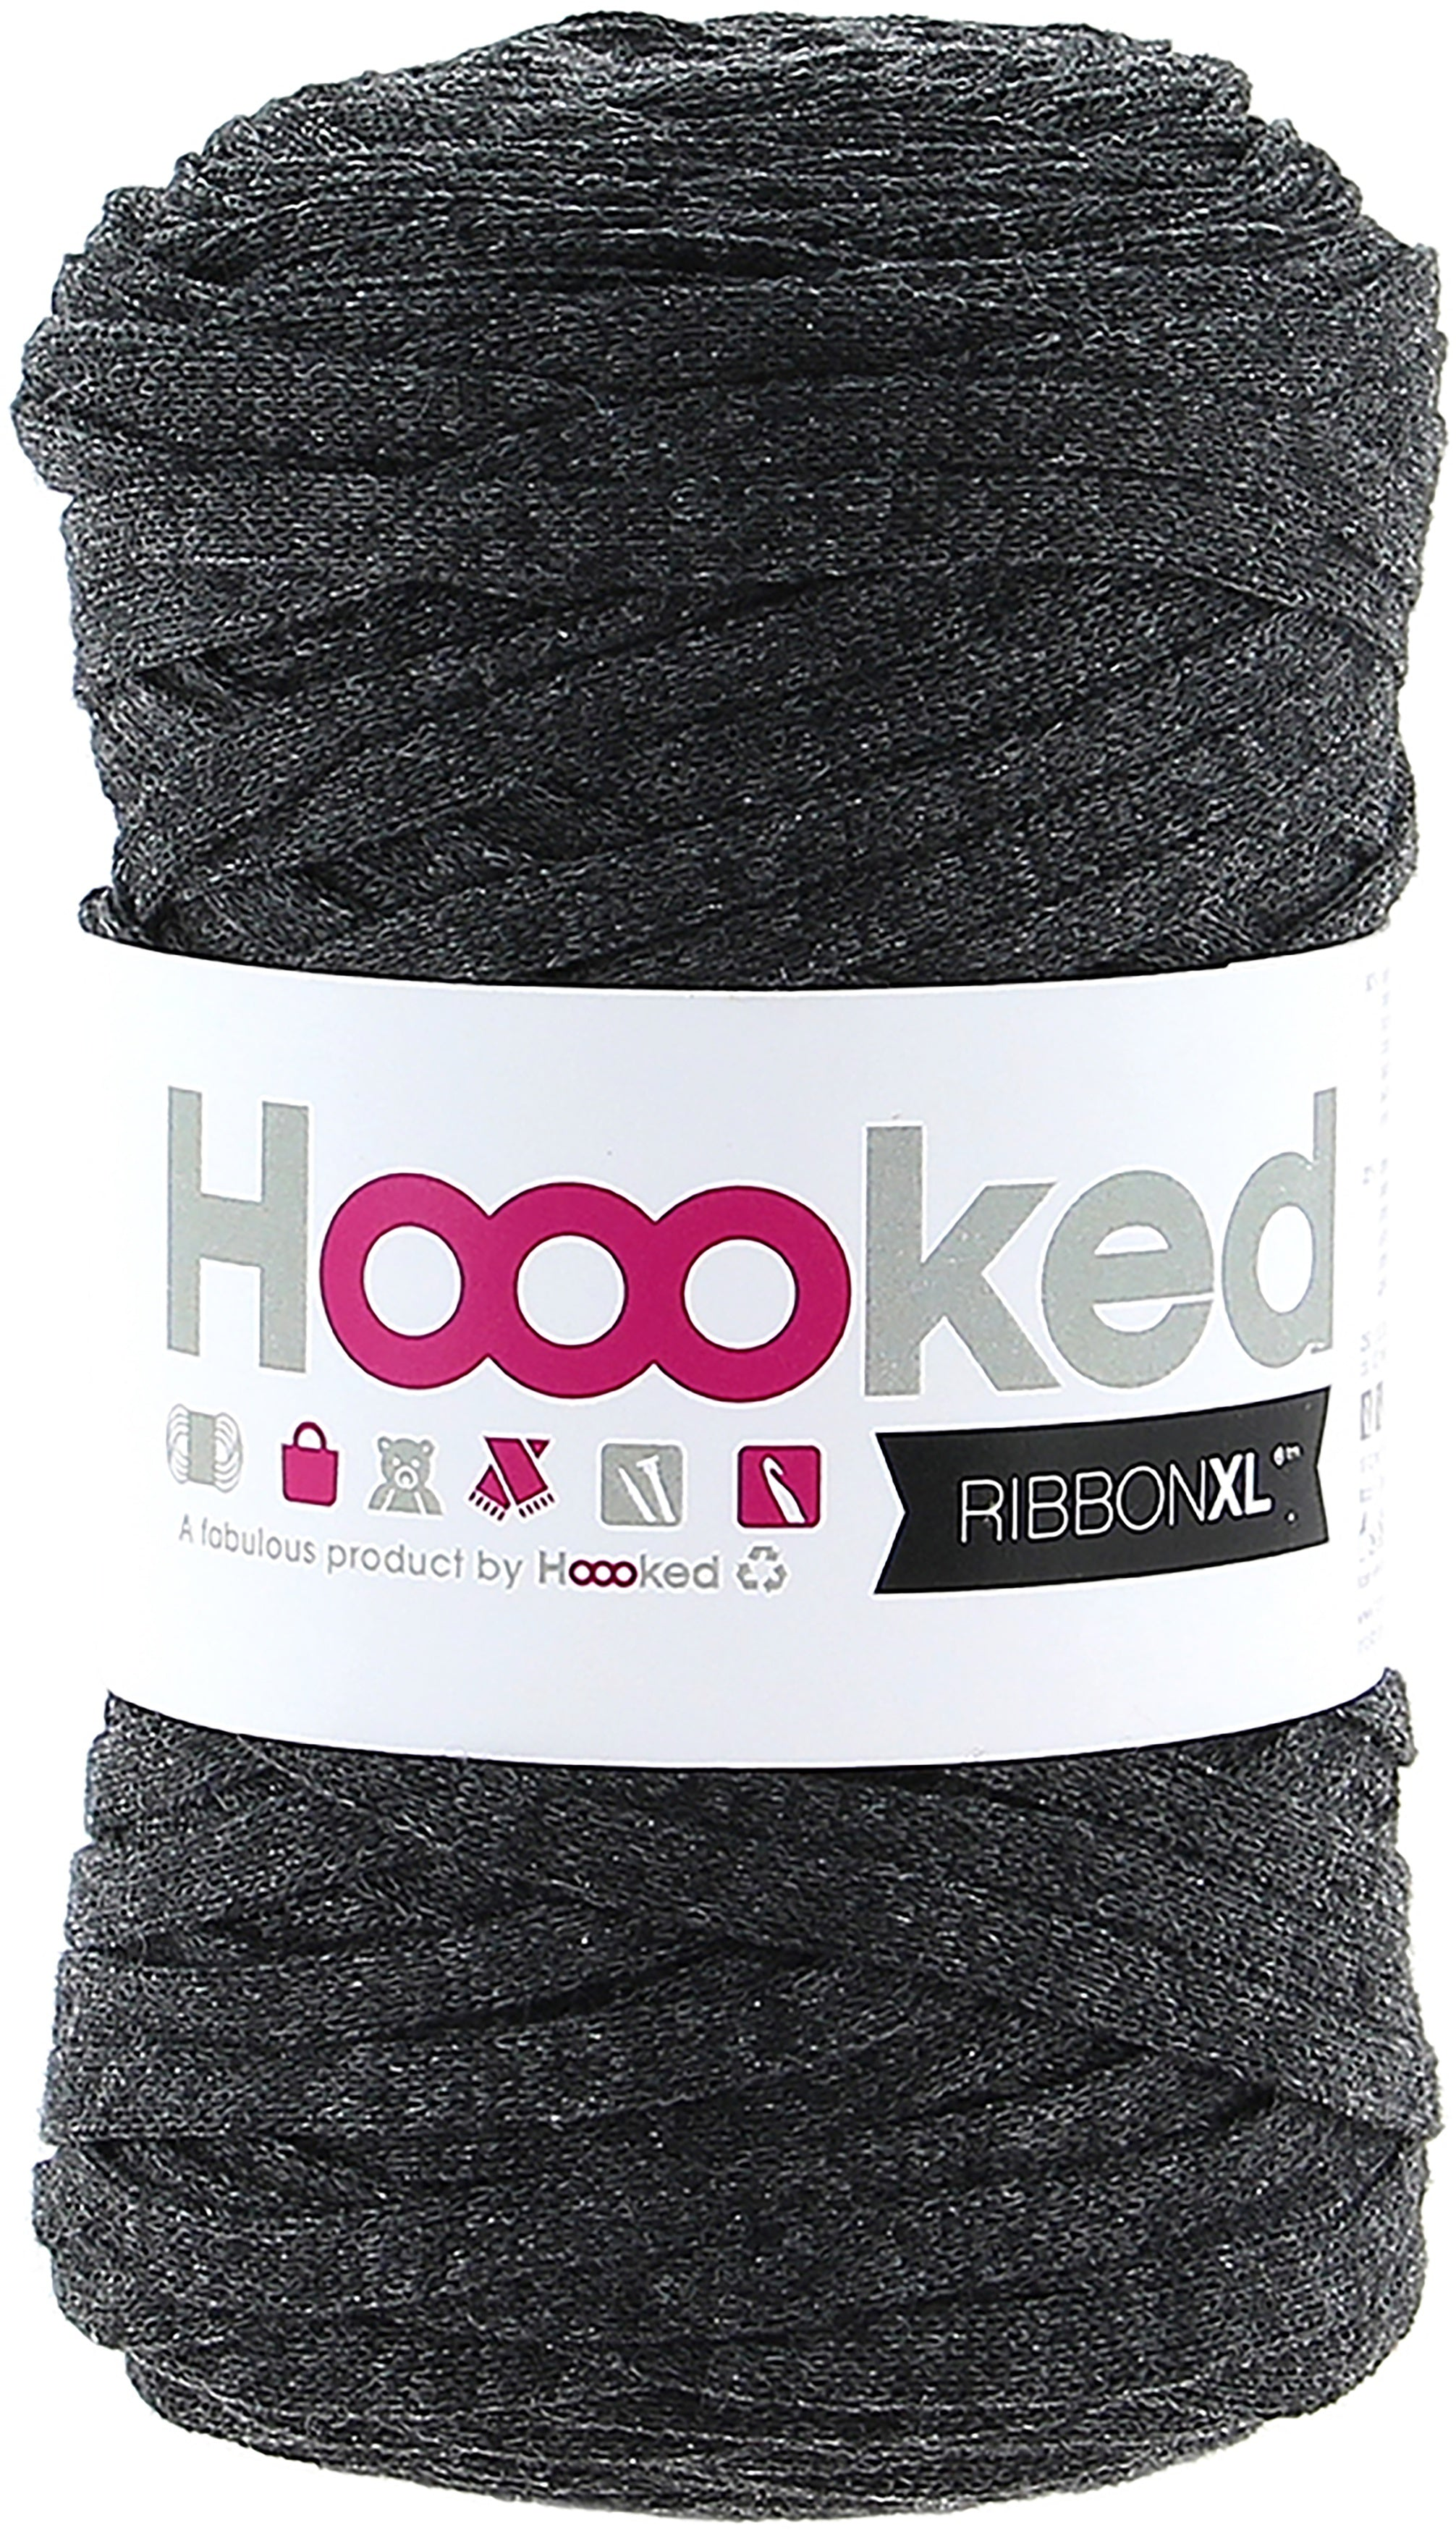 Hoooked RibbonXL 120M Cotton Yarn Knitting Crochet Charcoal Anthracite